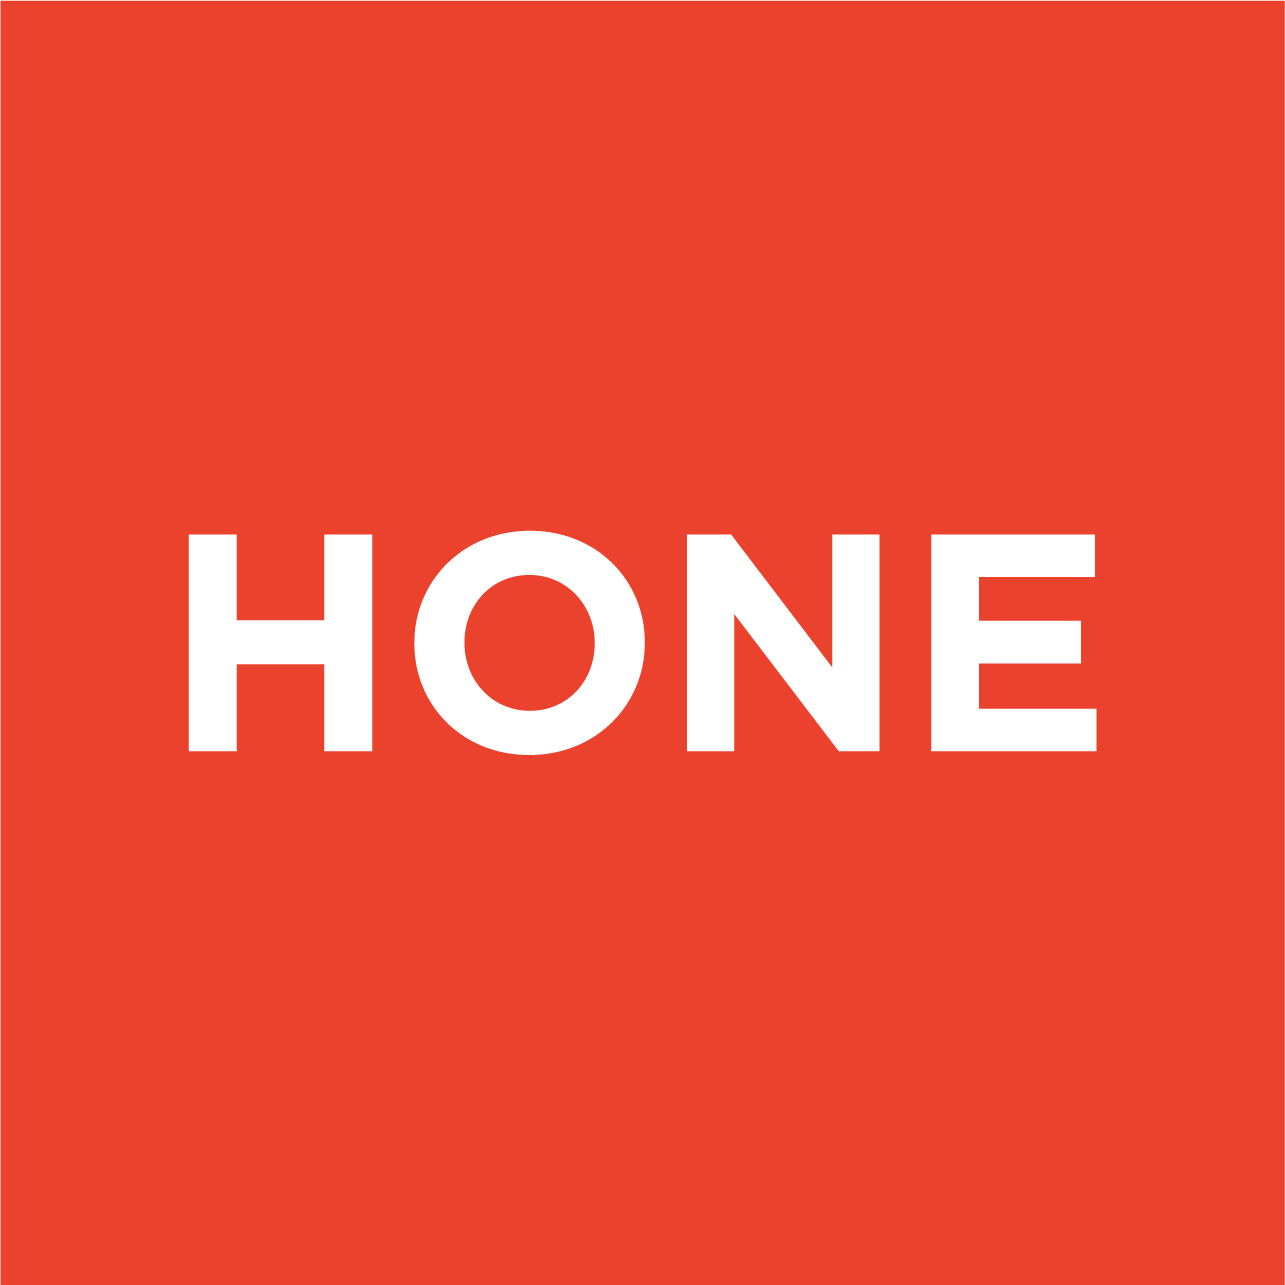 Online Marketing Services, Internet Marketing Solutions - HONE